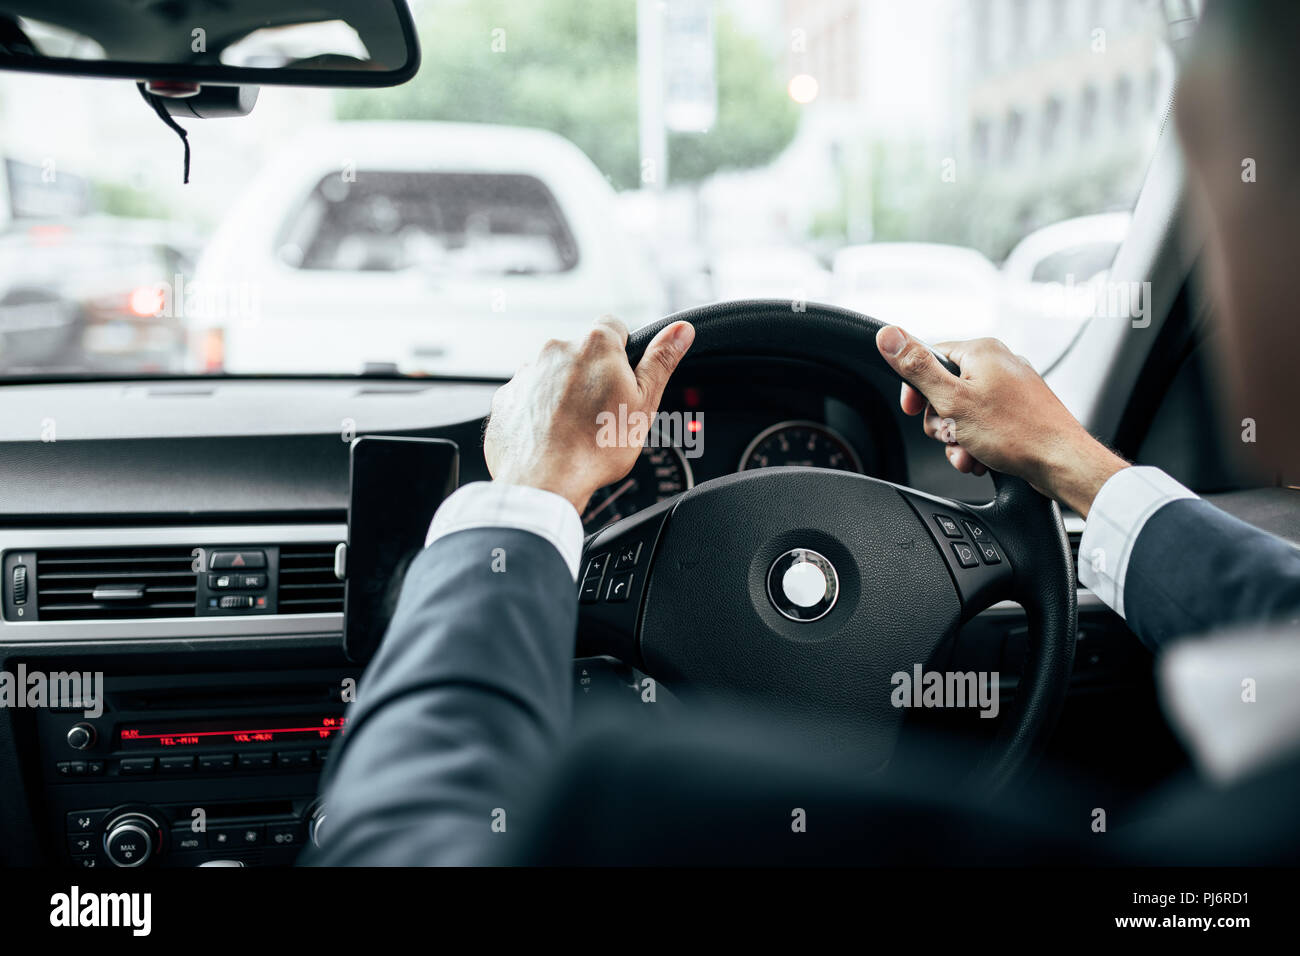 Rear view of man in formal clothes holding the steering wheel of his car with both hands. Businessman driving car with mobile phone clipped to dashboa - Stock Image